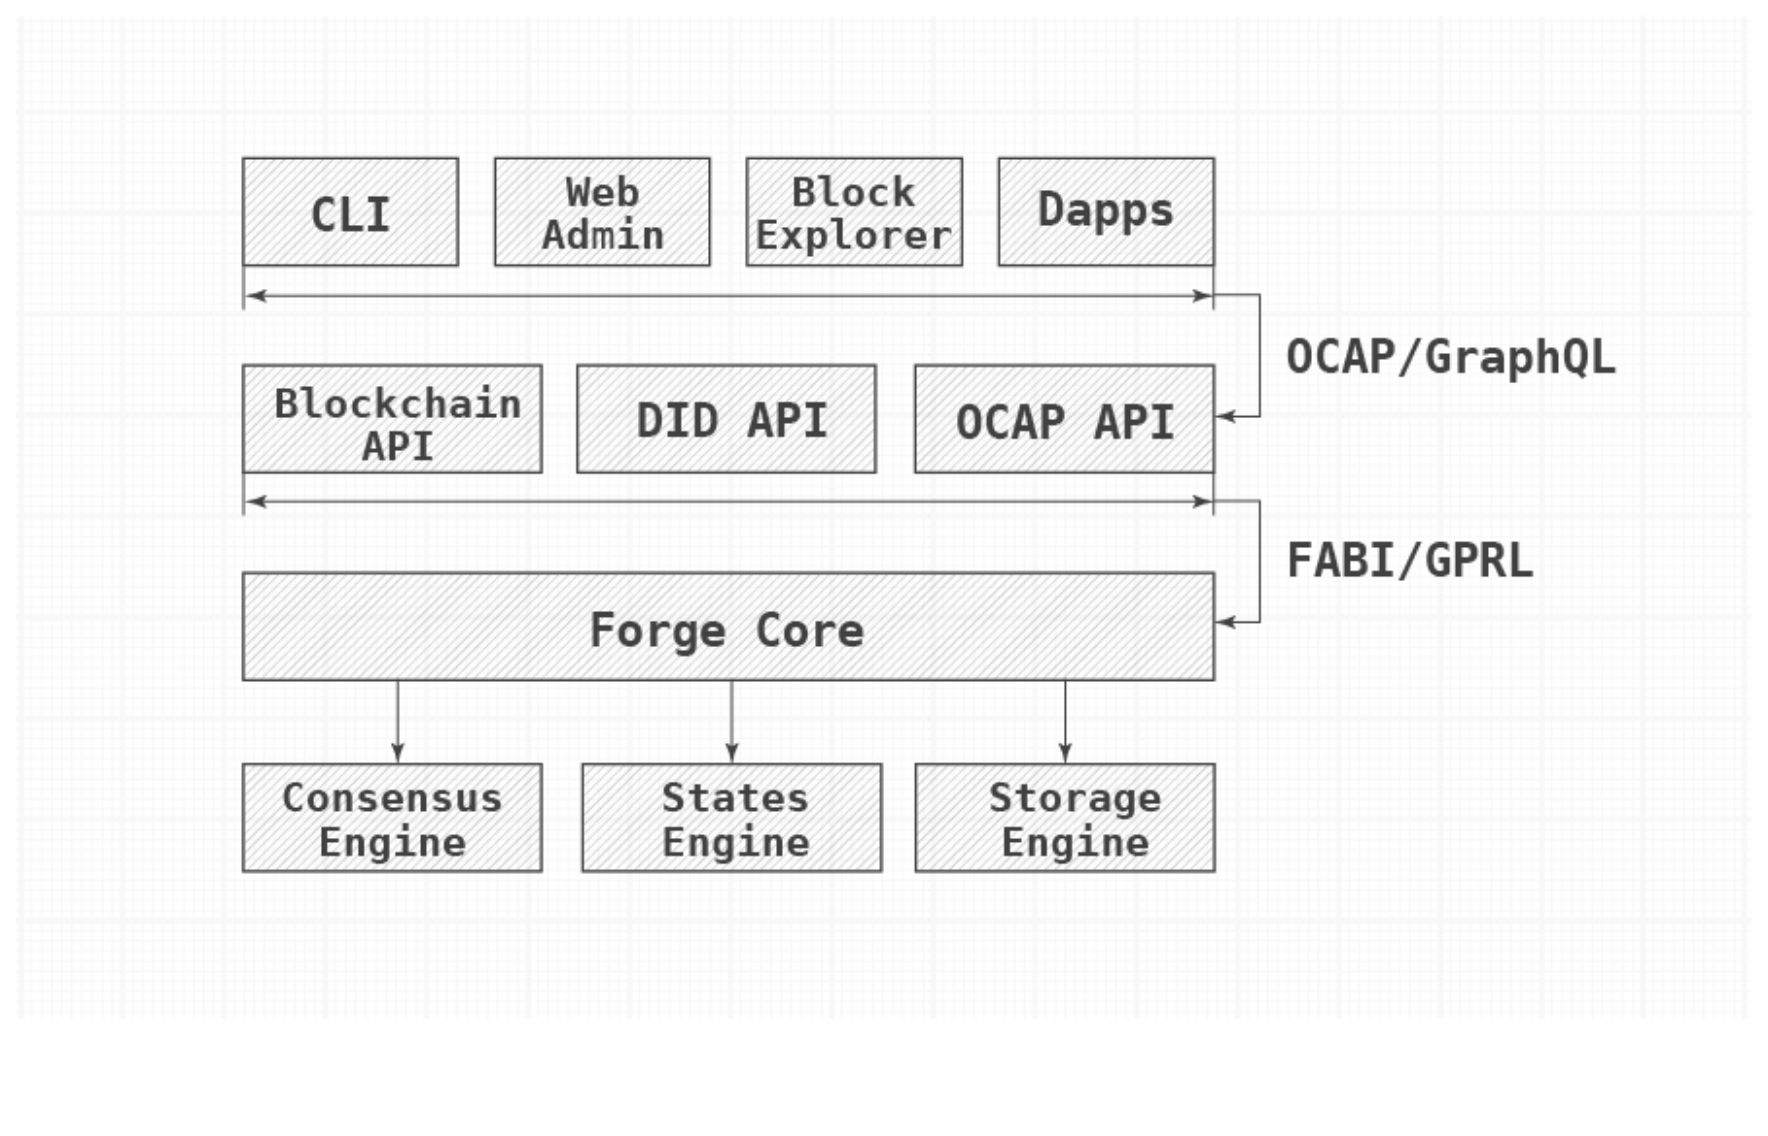 ArcBlock's Forge Framework and Forge SDK make it easy to build custom blockchains and DApps